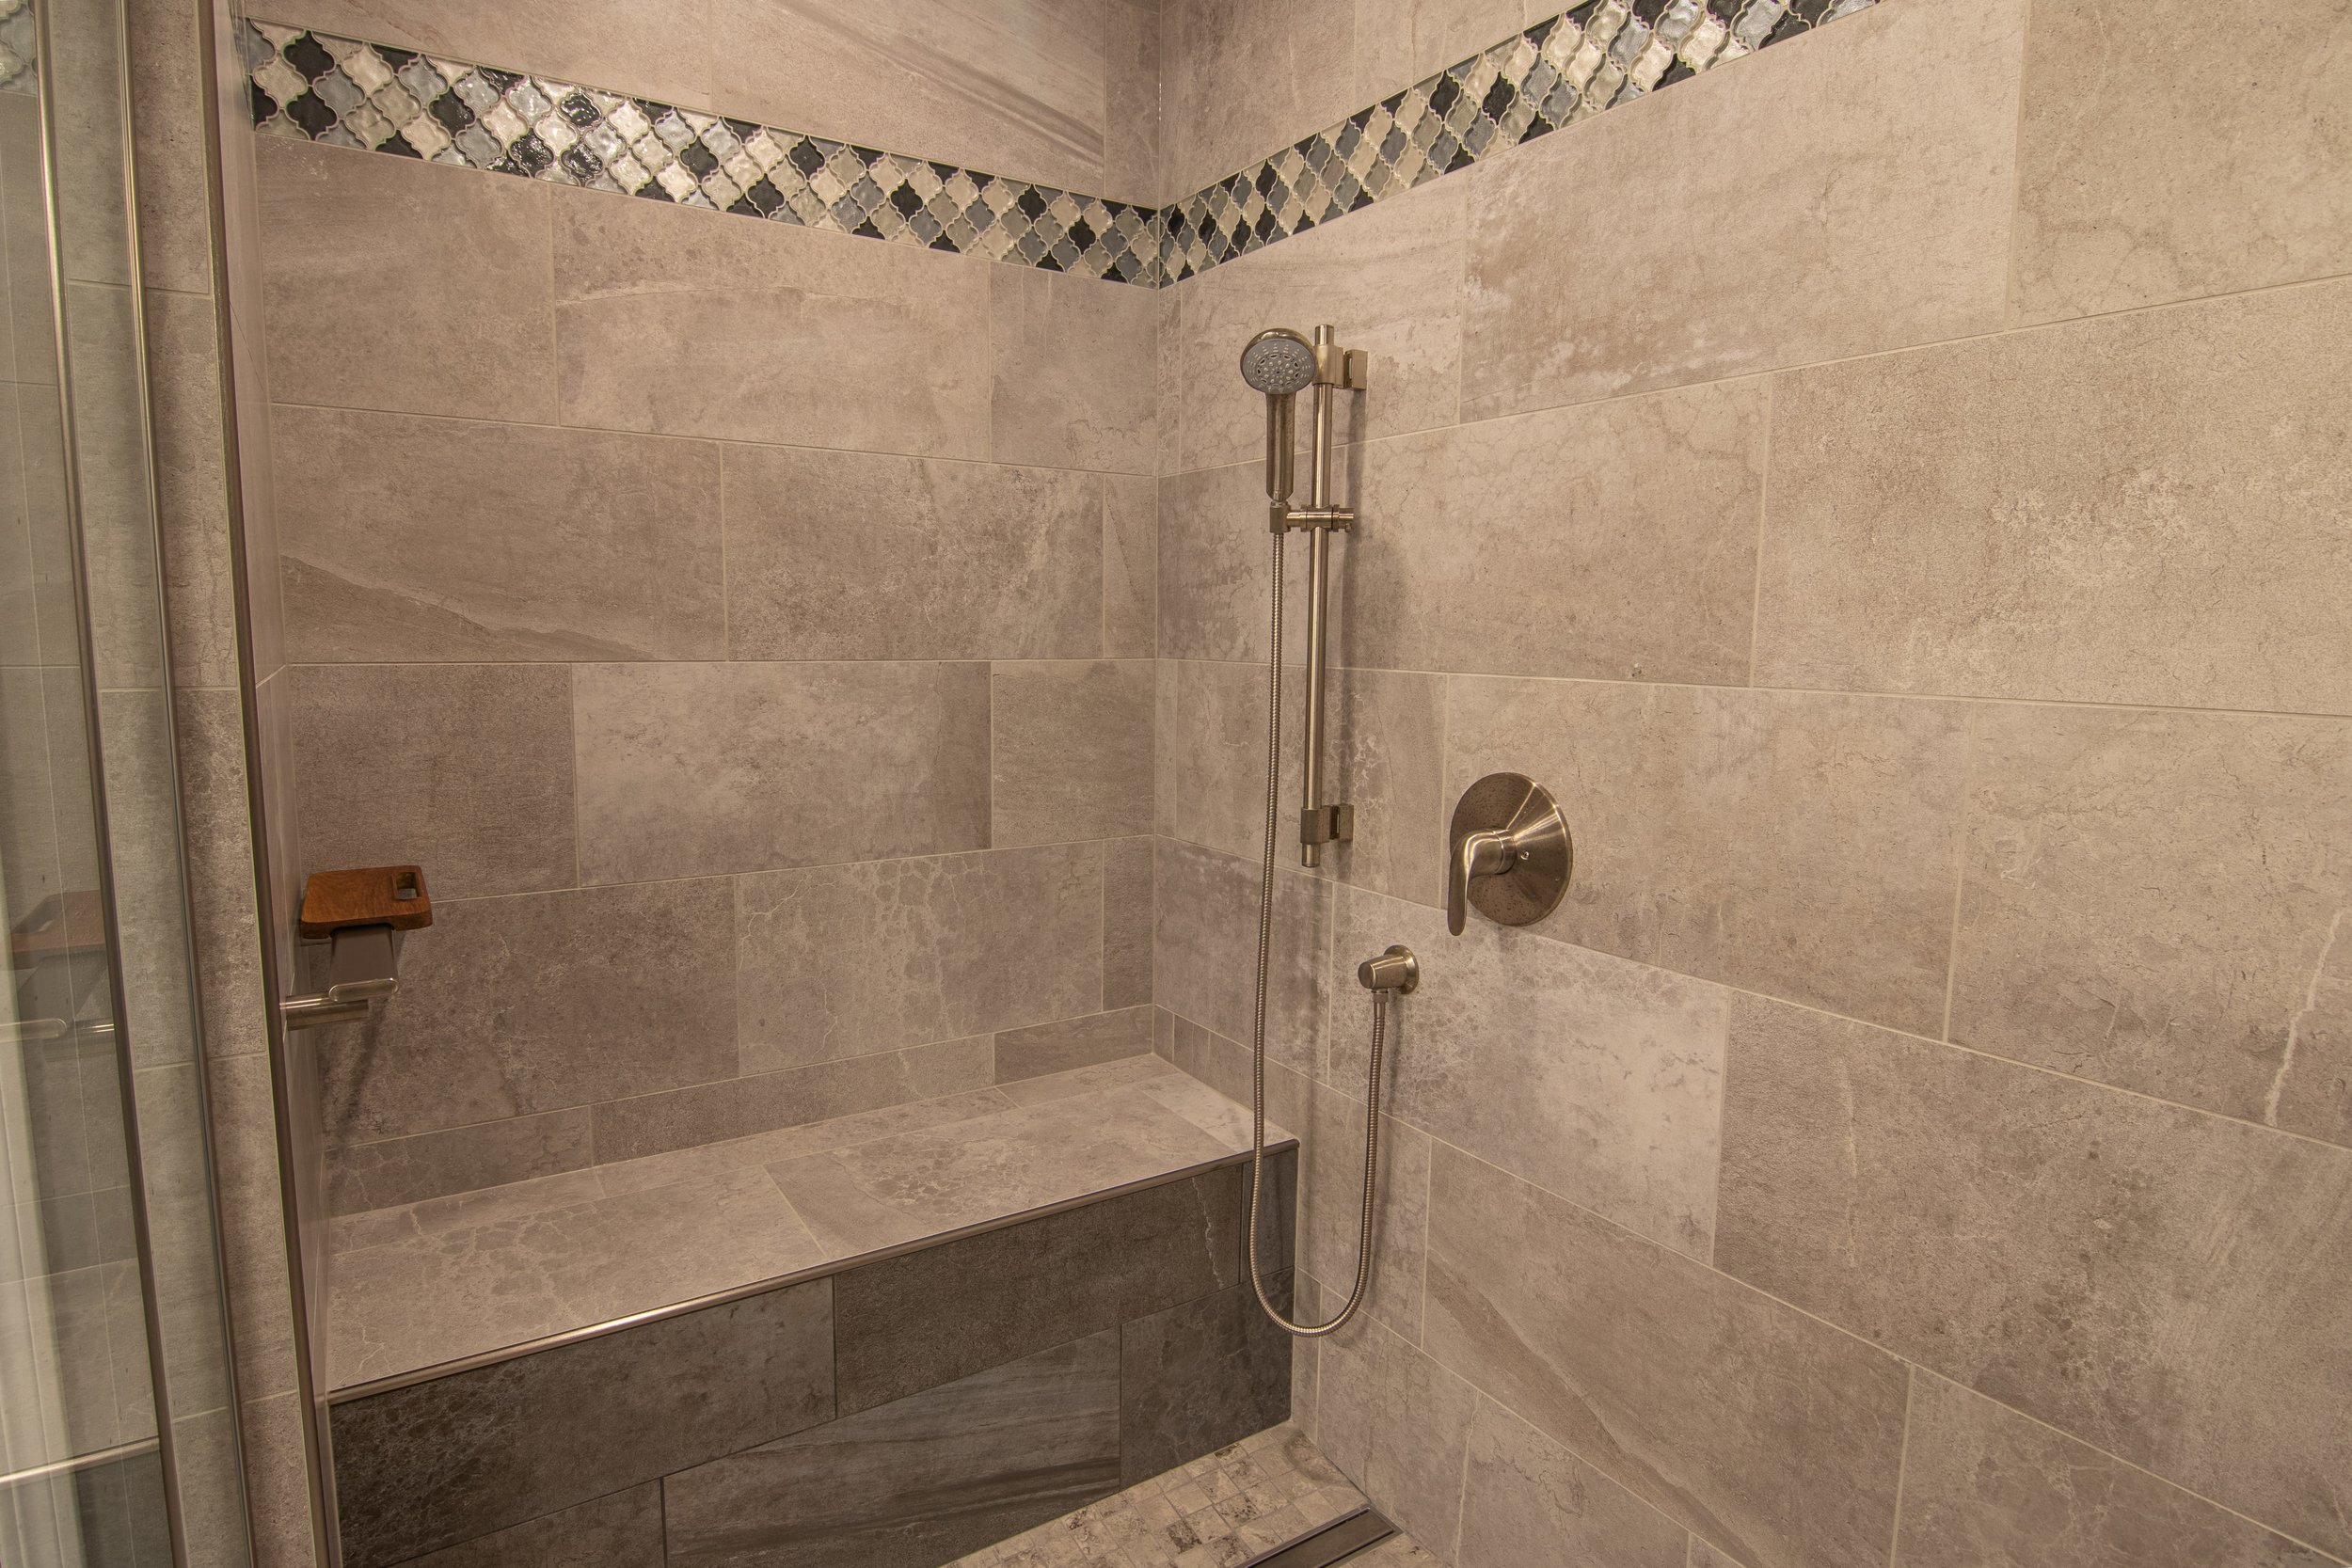 bathroom-remodel-renovate-monona-wi-4.jpg